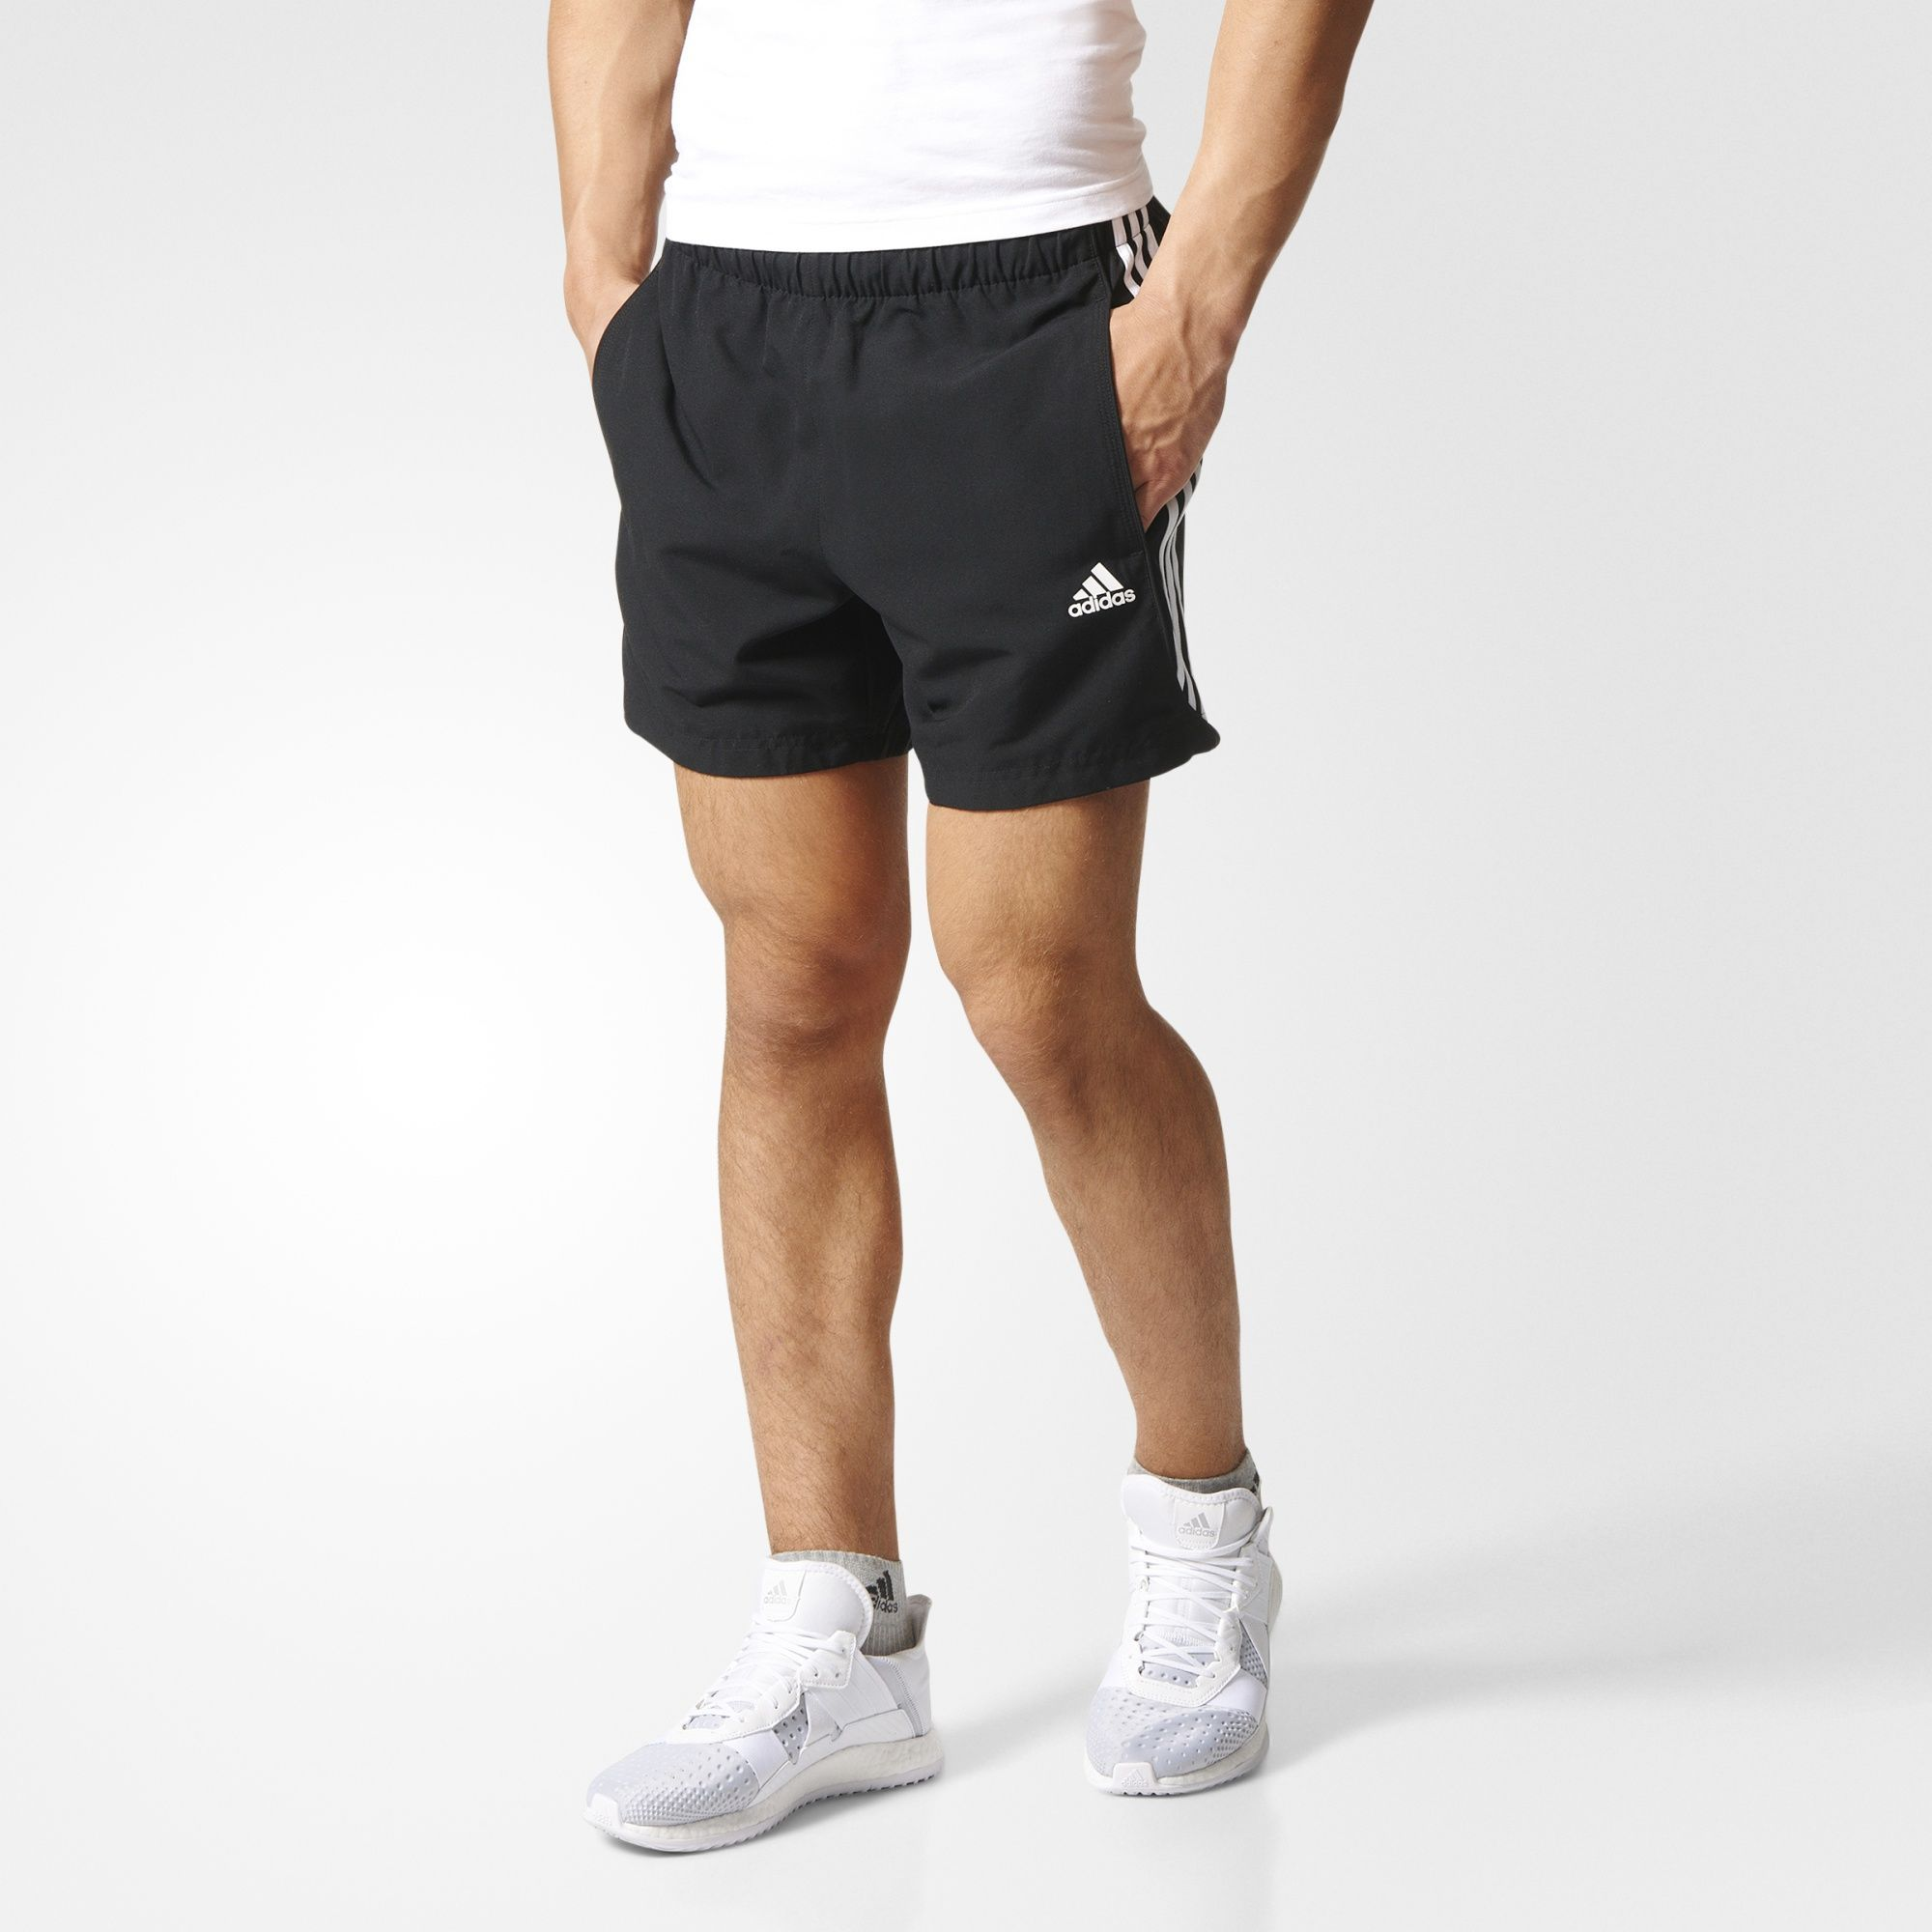 New Adidas 3 Stripes Essential Shorts For Mens On Sale